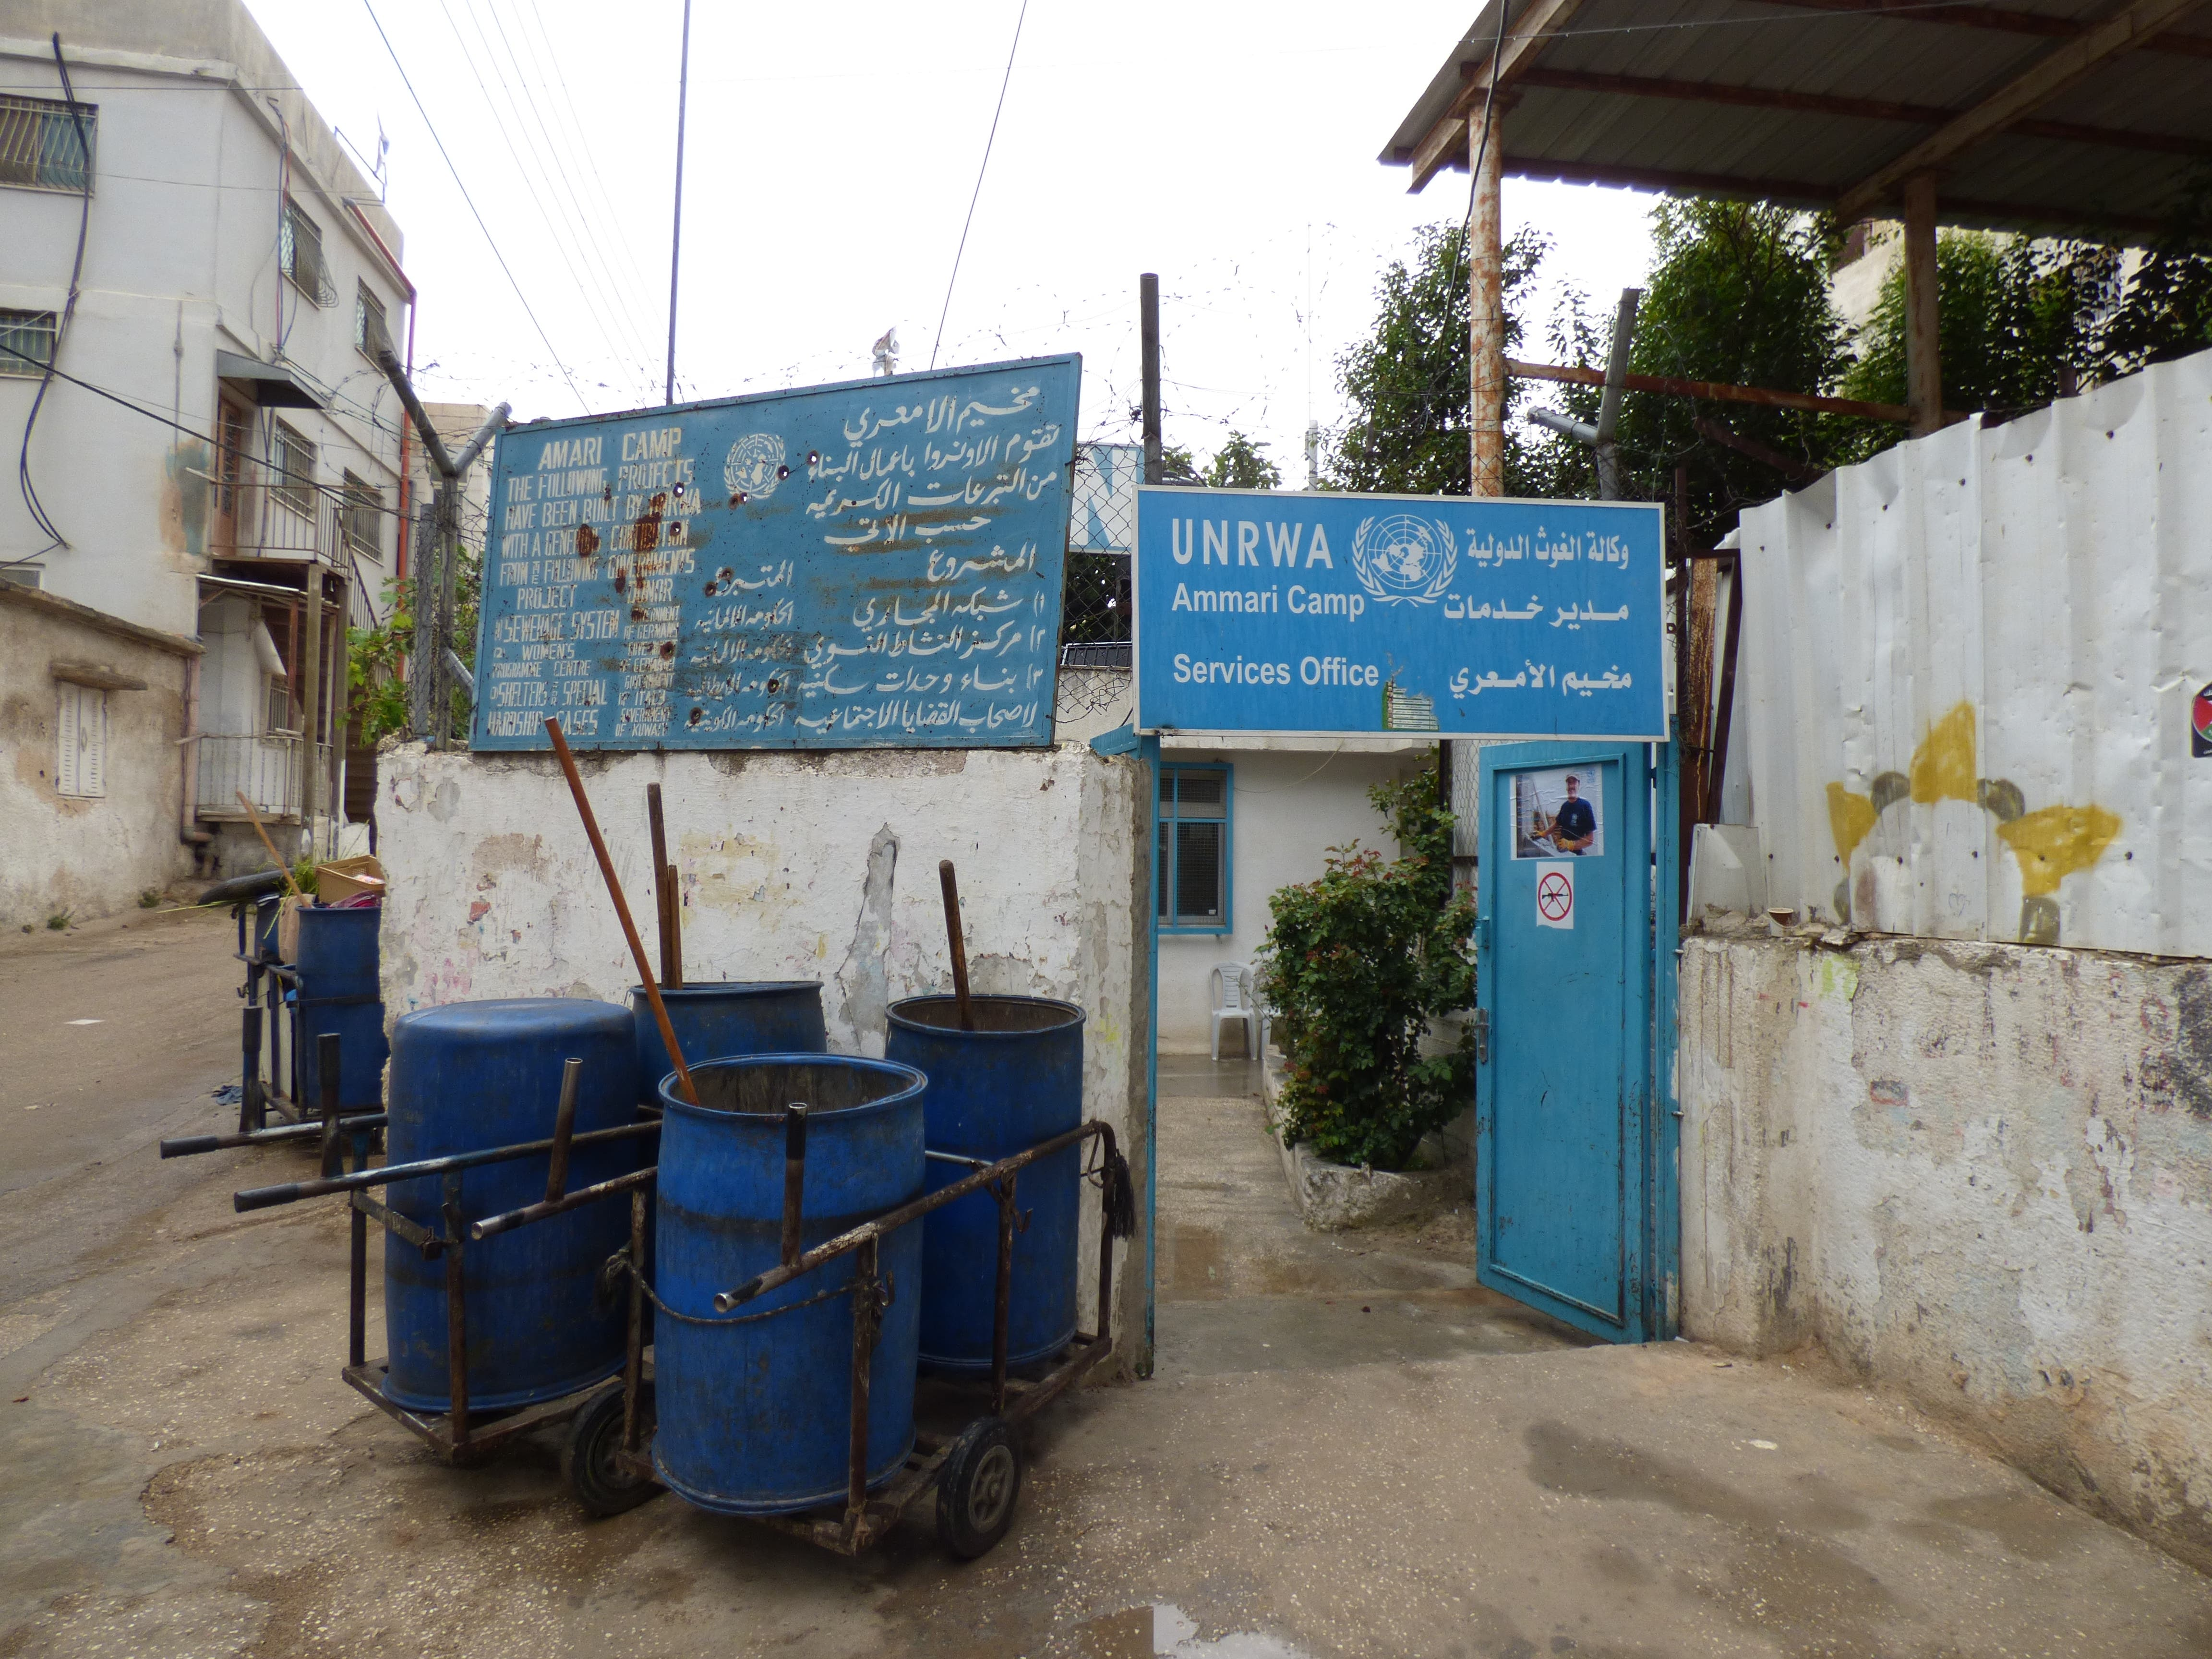 Al-Ammari refugee camp was established by UNRWA, the United Nations refugee agency, in the 1950s in Ramallah, in the Occupied West Bank Territory. (Al Arabiya/ Nabila Ramdani)